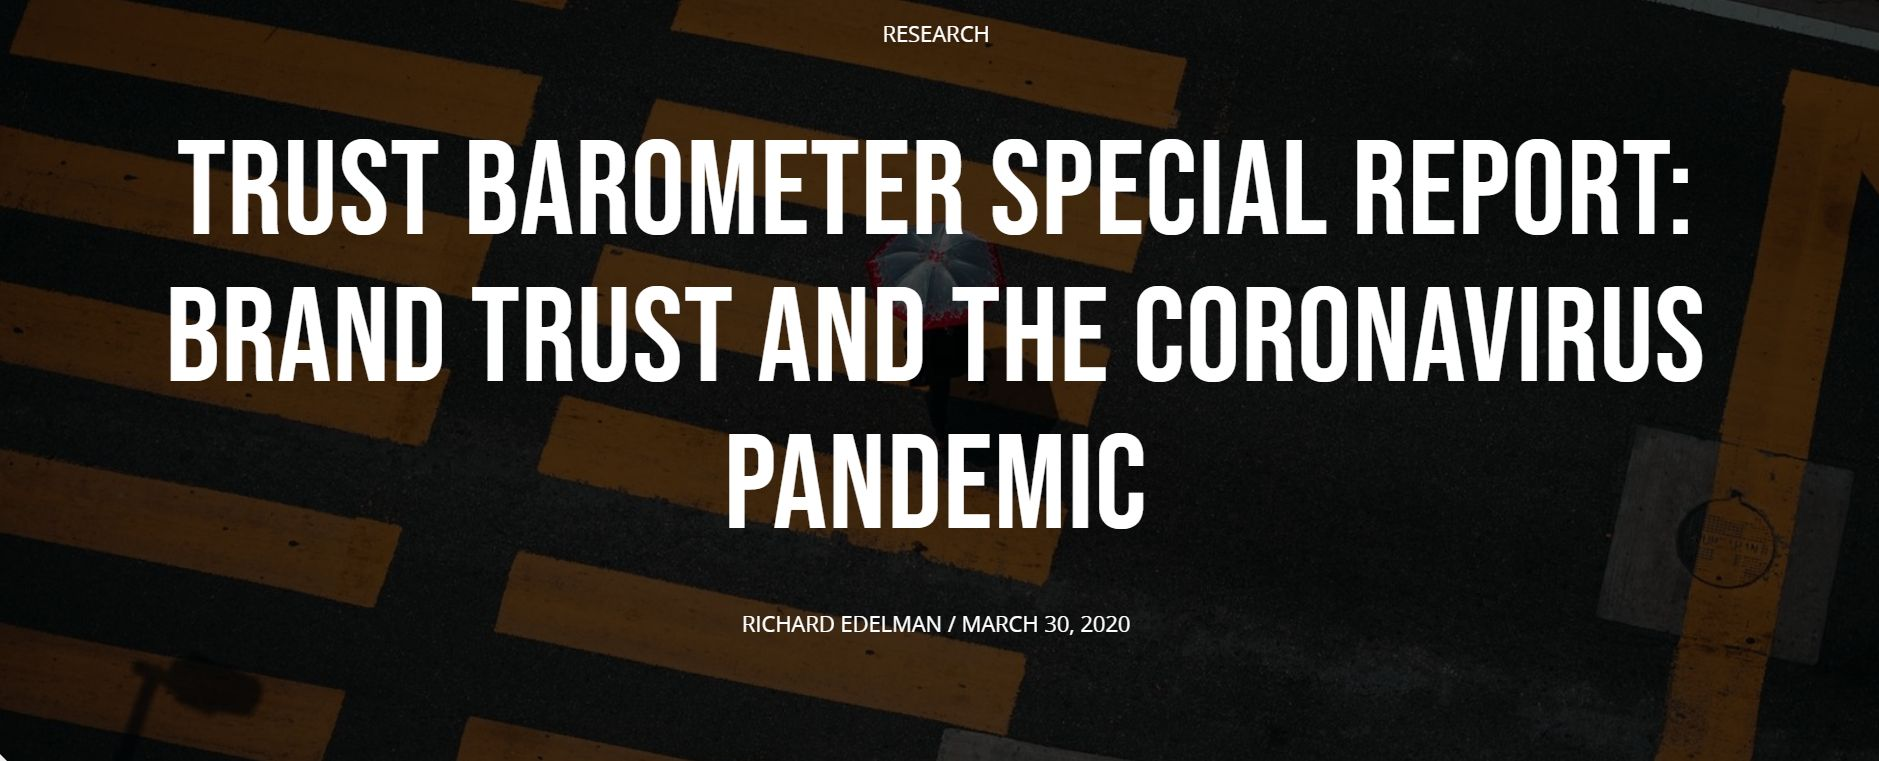 The editor of eCCO Magazine would like to draw readers' attention to the study made by Edelman and published by the IPR Research letter: Edelman Trust Barometer Special Report: Brand Trust and the Coronavirus Pandemic